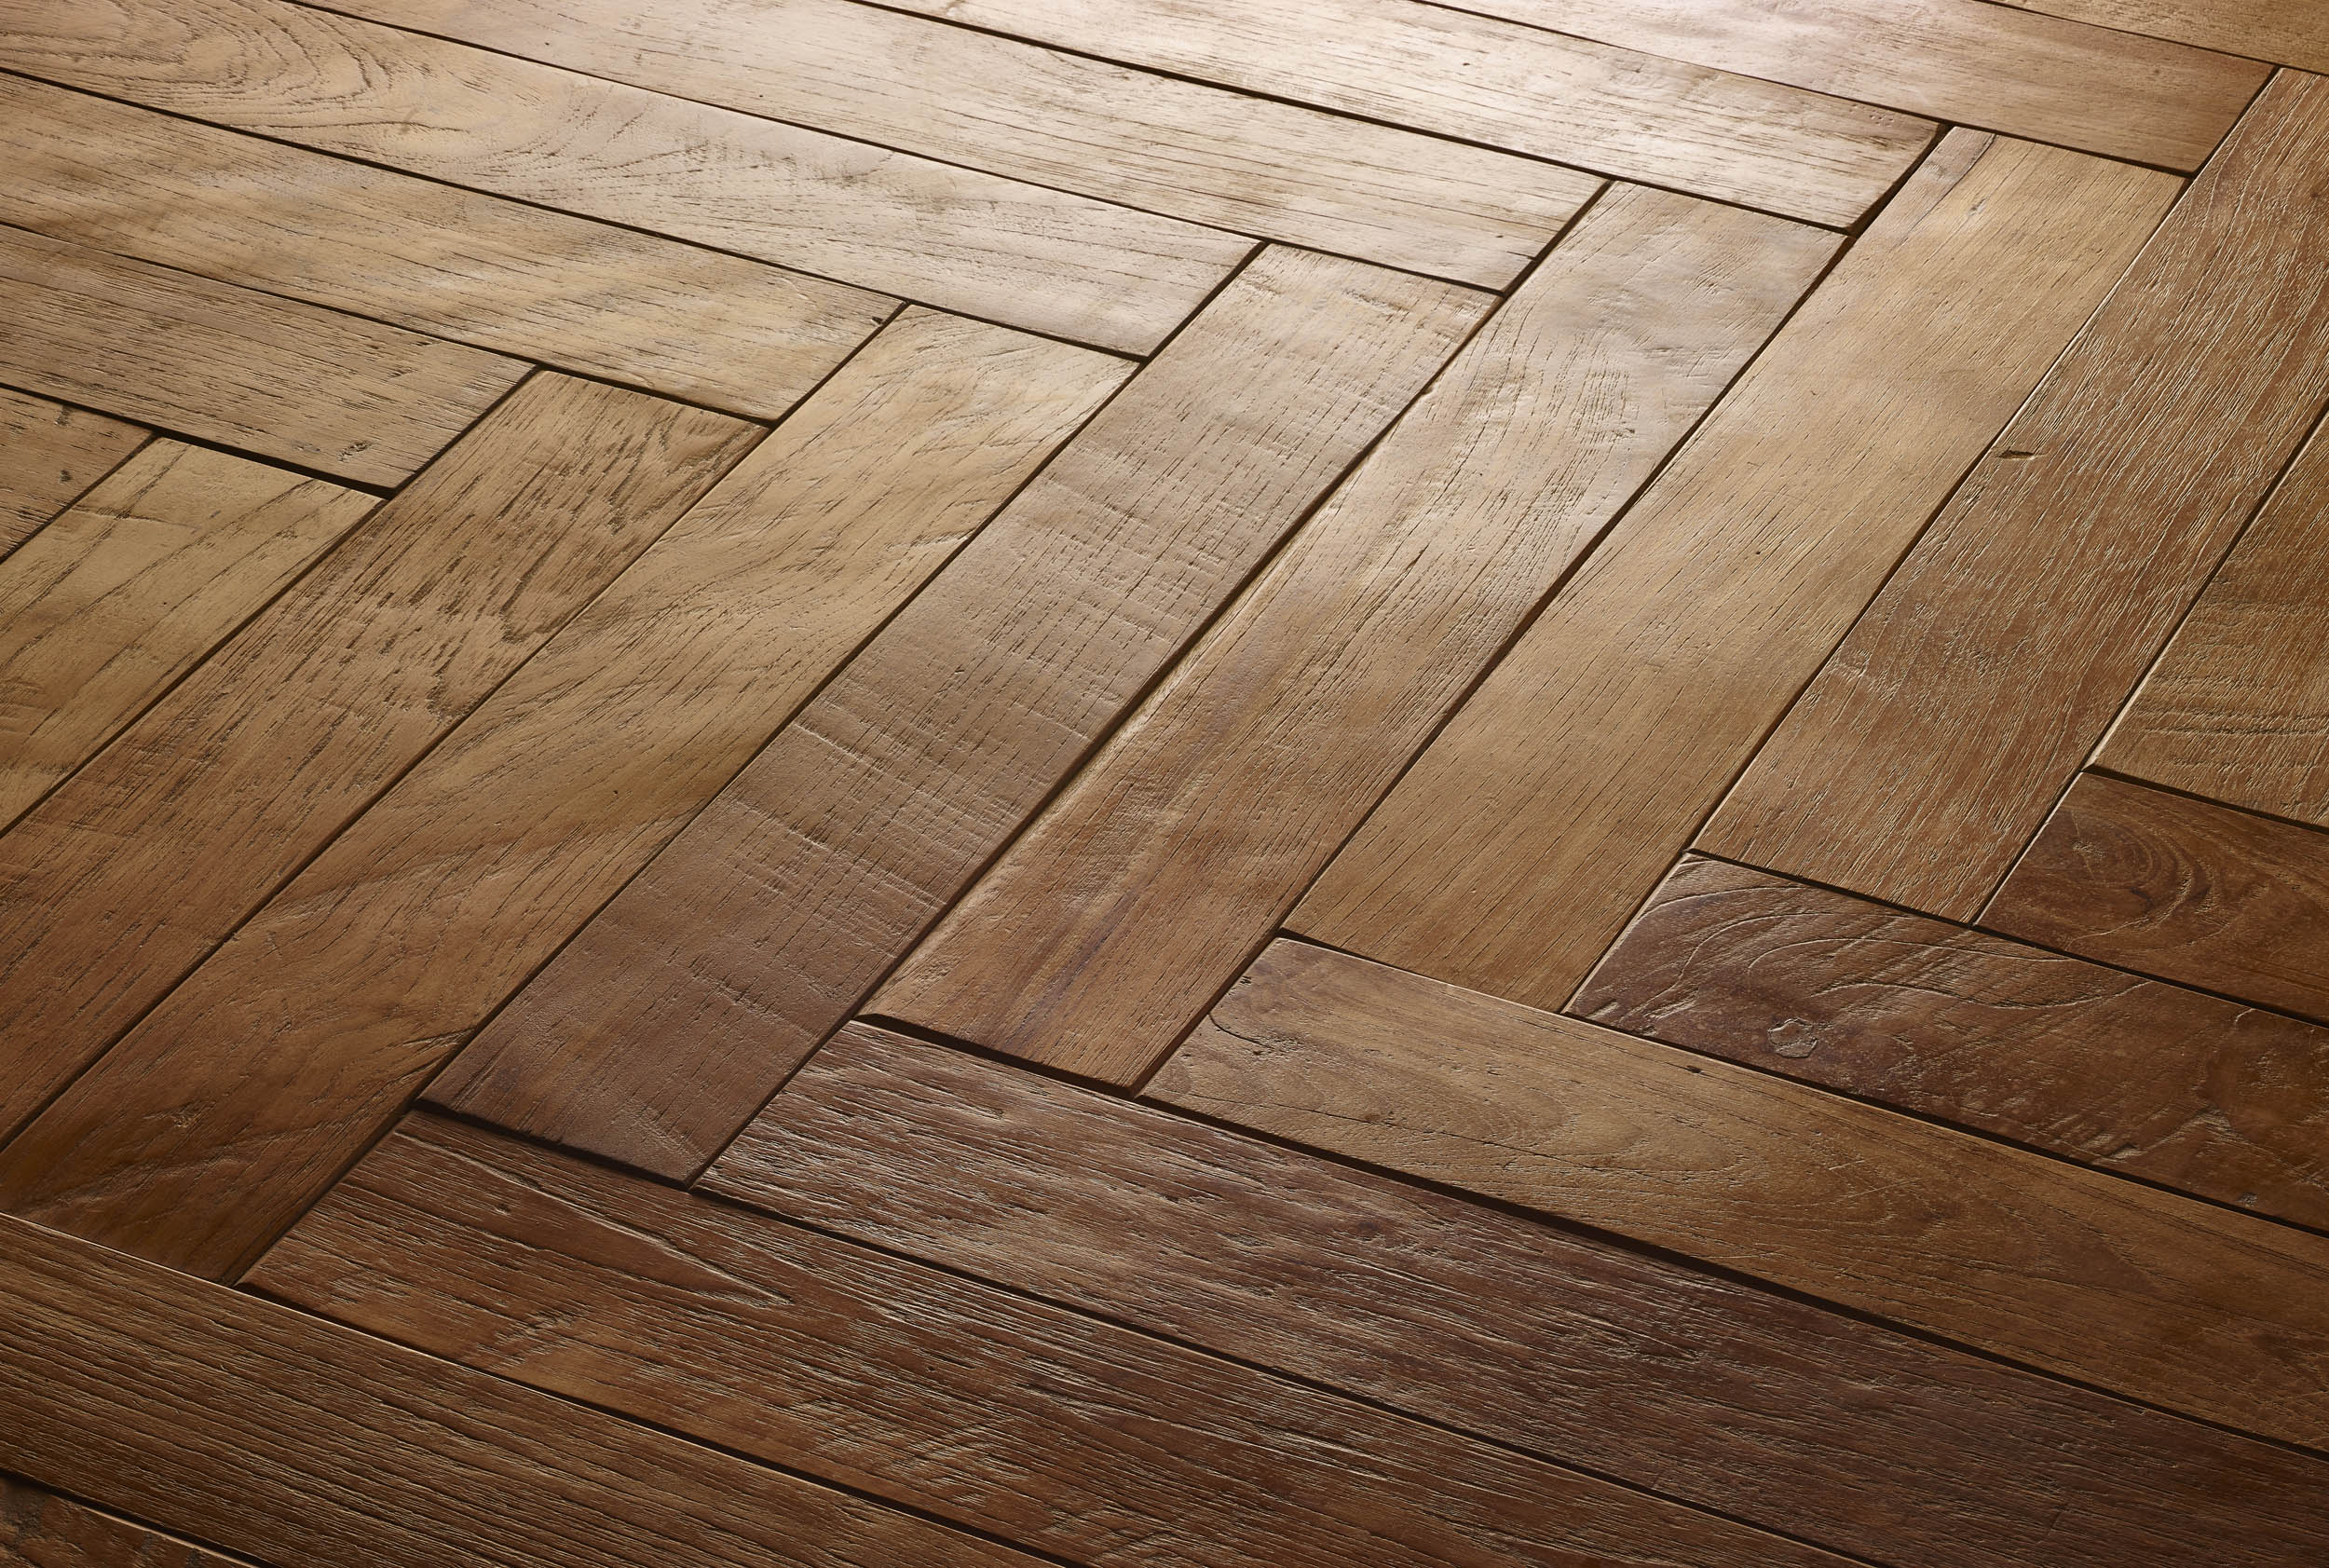 Teak Tile – Subway